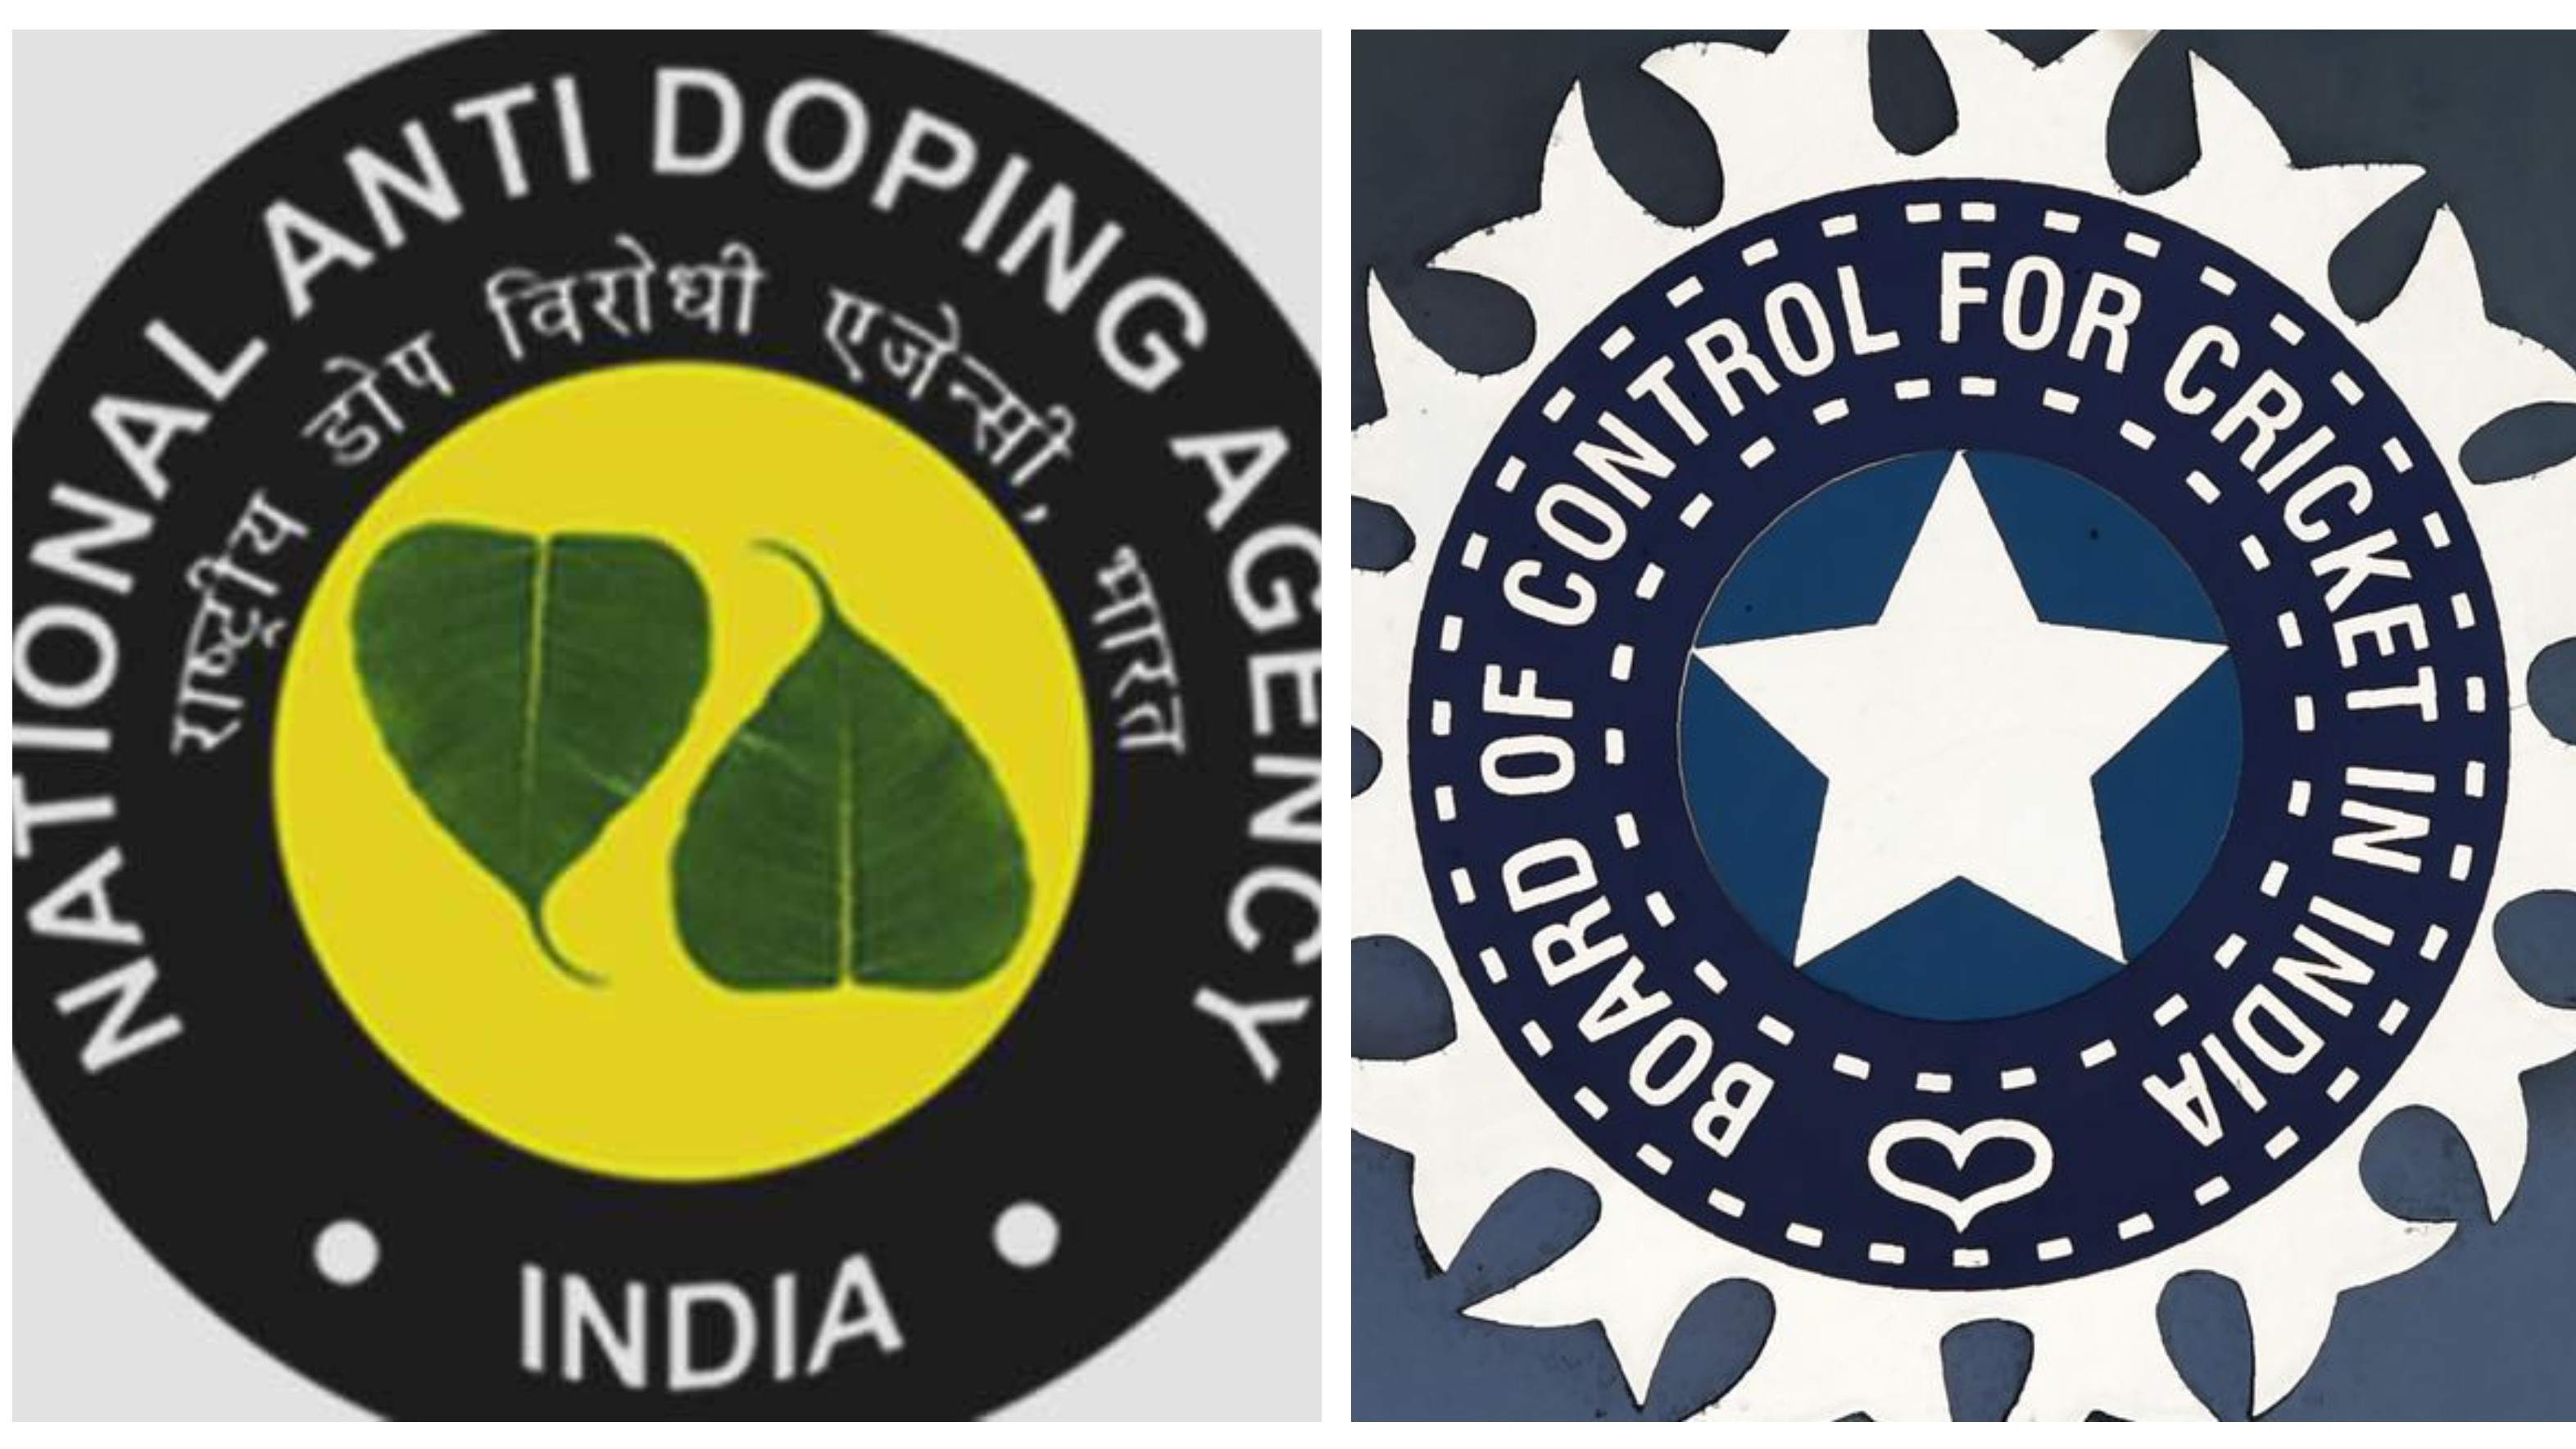 Ending years of defiance, BCCI finally comes under ambit of NADA